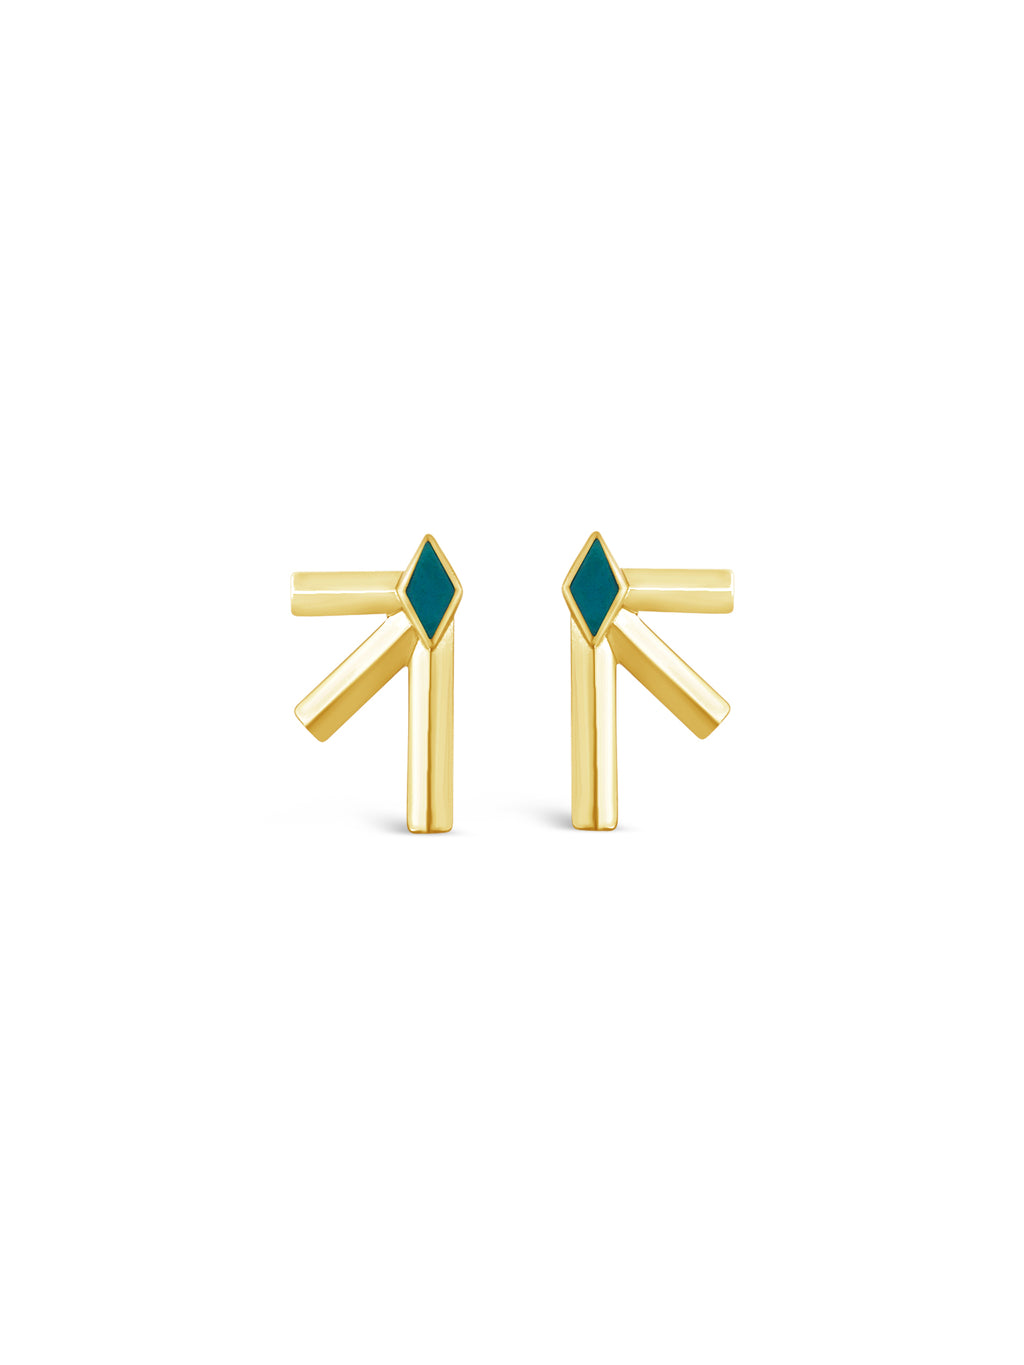 Bandit Earrings- Gold